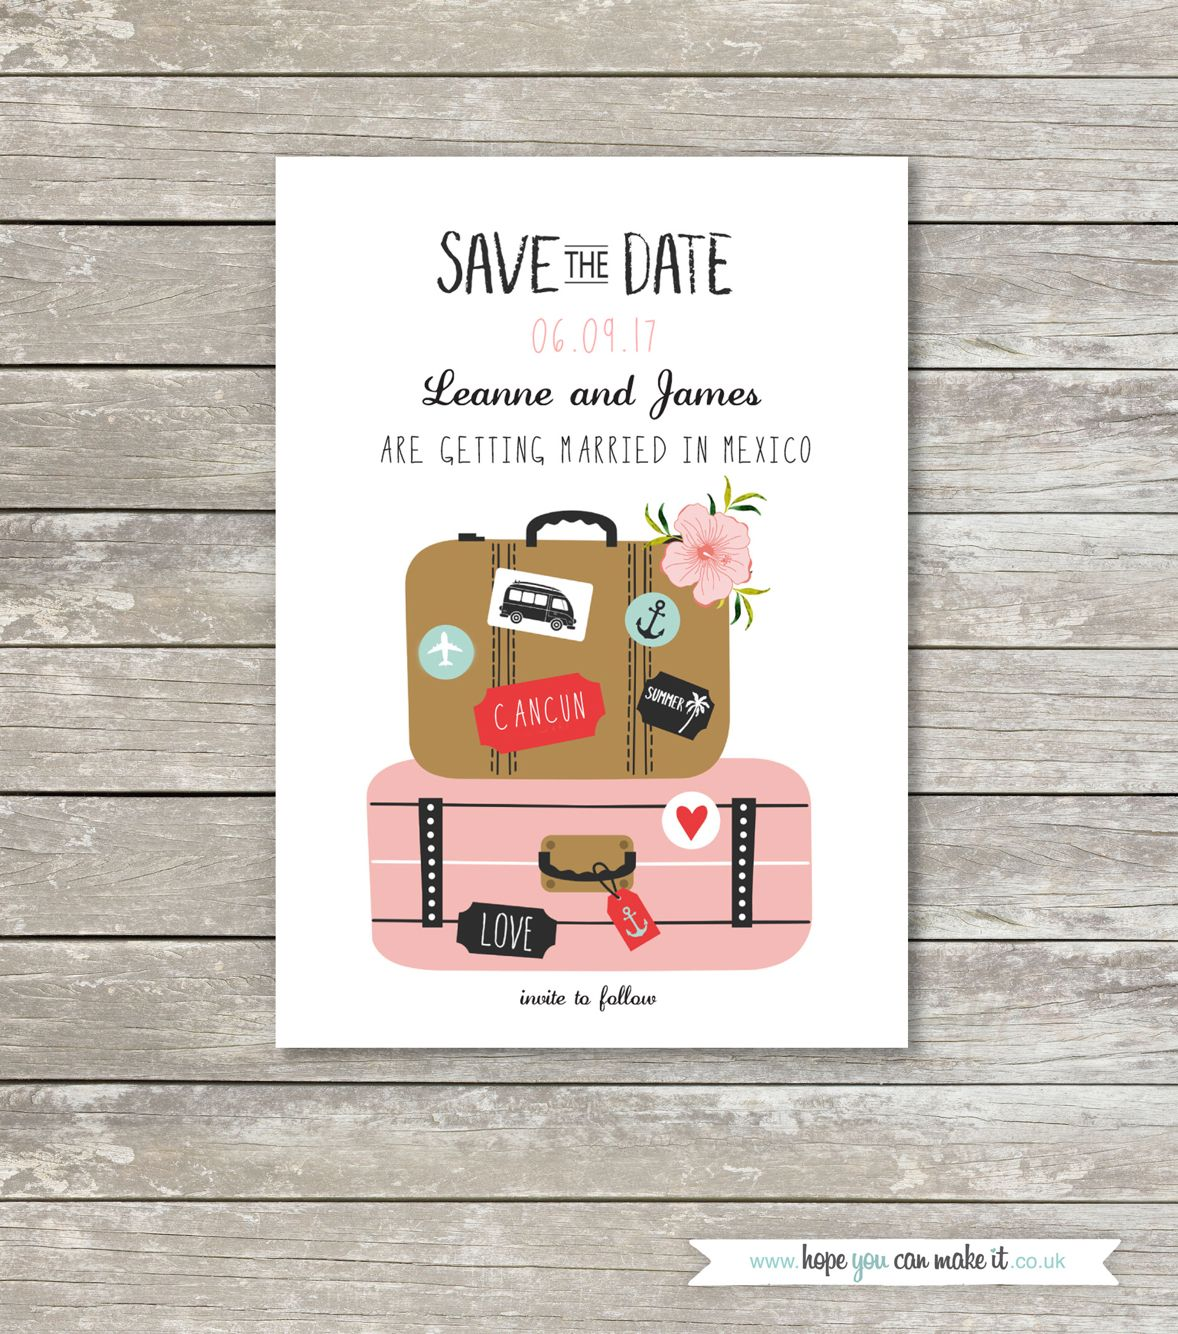 Dave the date wedding invite, suitcase design ideal for destination ...